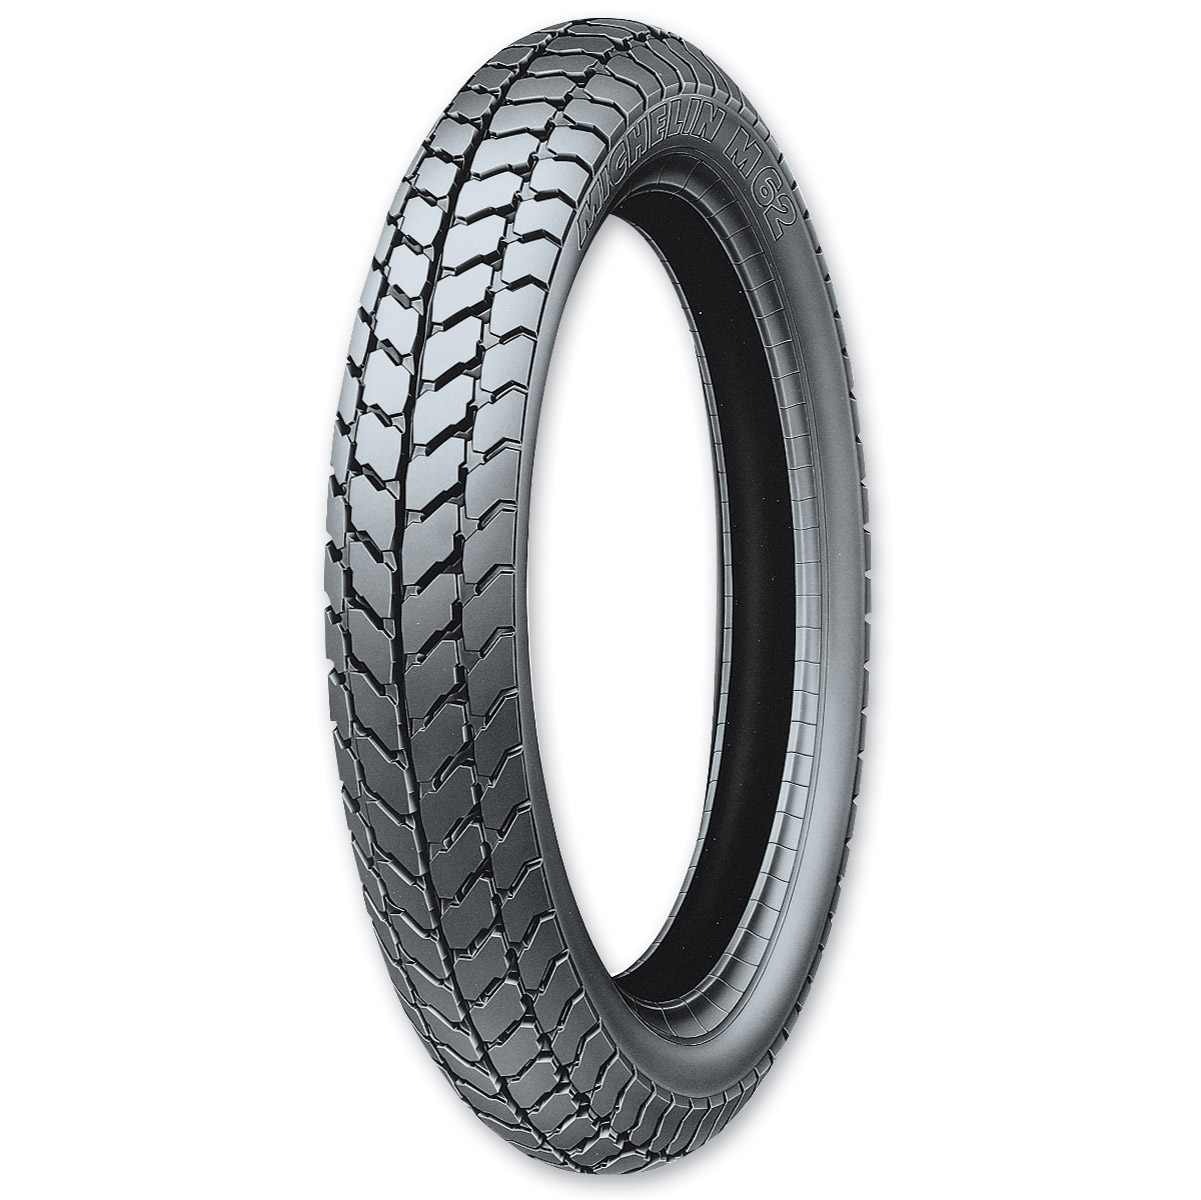 Michelin M62 Gazelle 3.00-17 F/R Tire